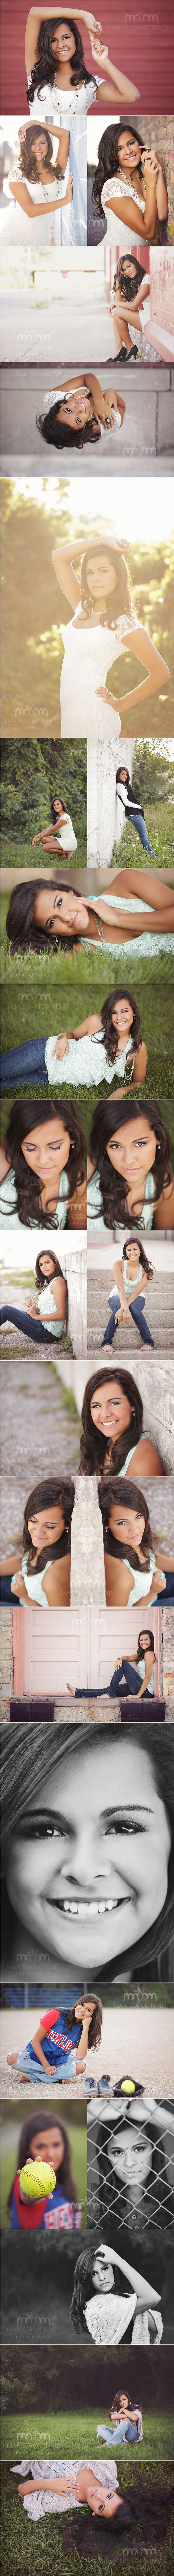 Senior photo ideas :)